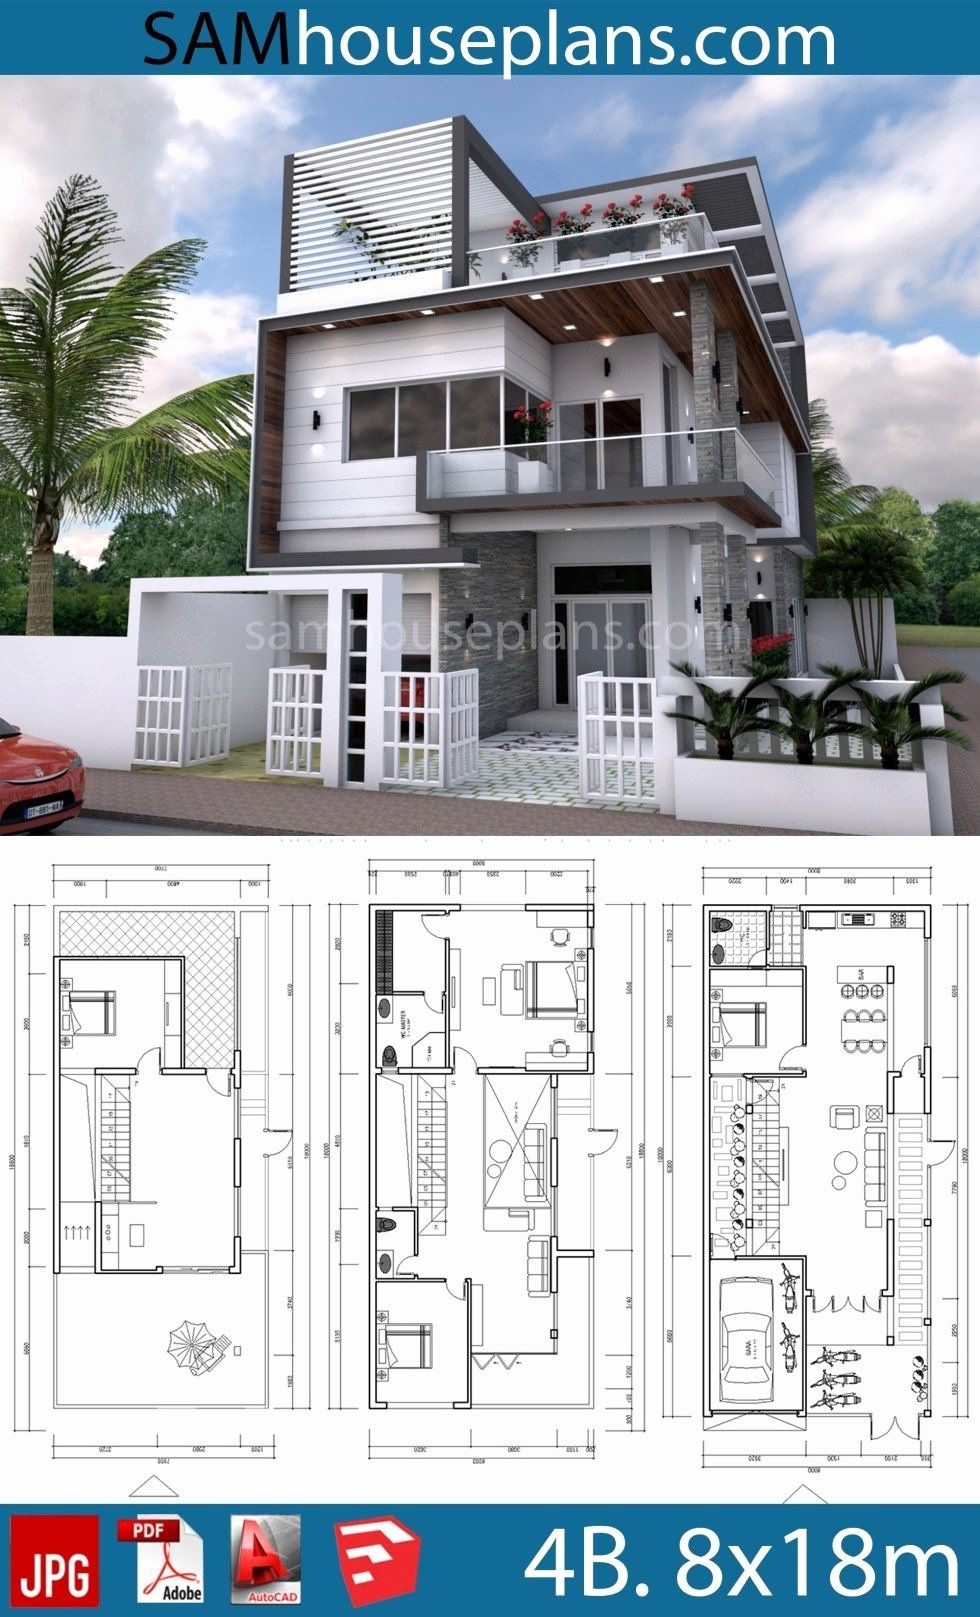 3 Floor House Plans Fresh House Plans 8x18m With 4 Bedrooms In 2020 Dream House Pictures Modern House Floor Plans Model House Plan